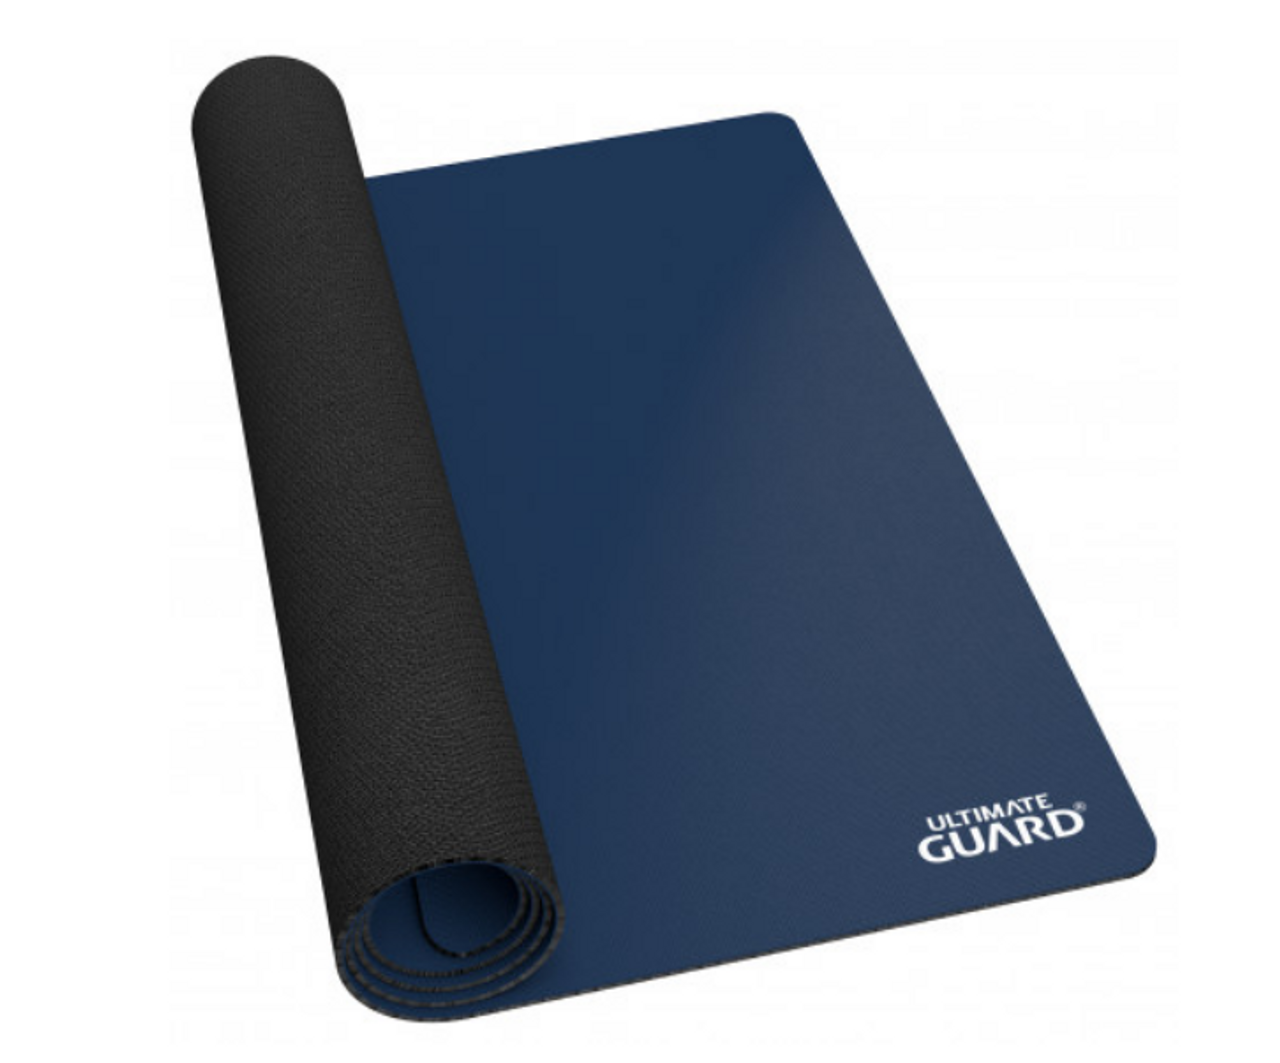 Ultimate Guard - Playmat - Dark Blue - 61x35